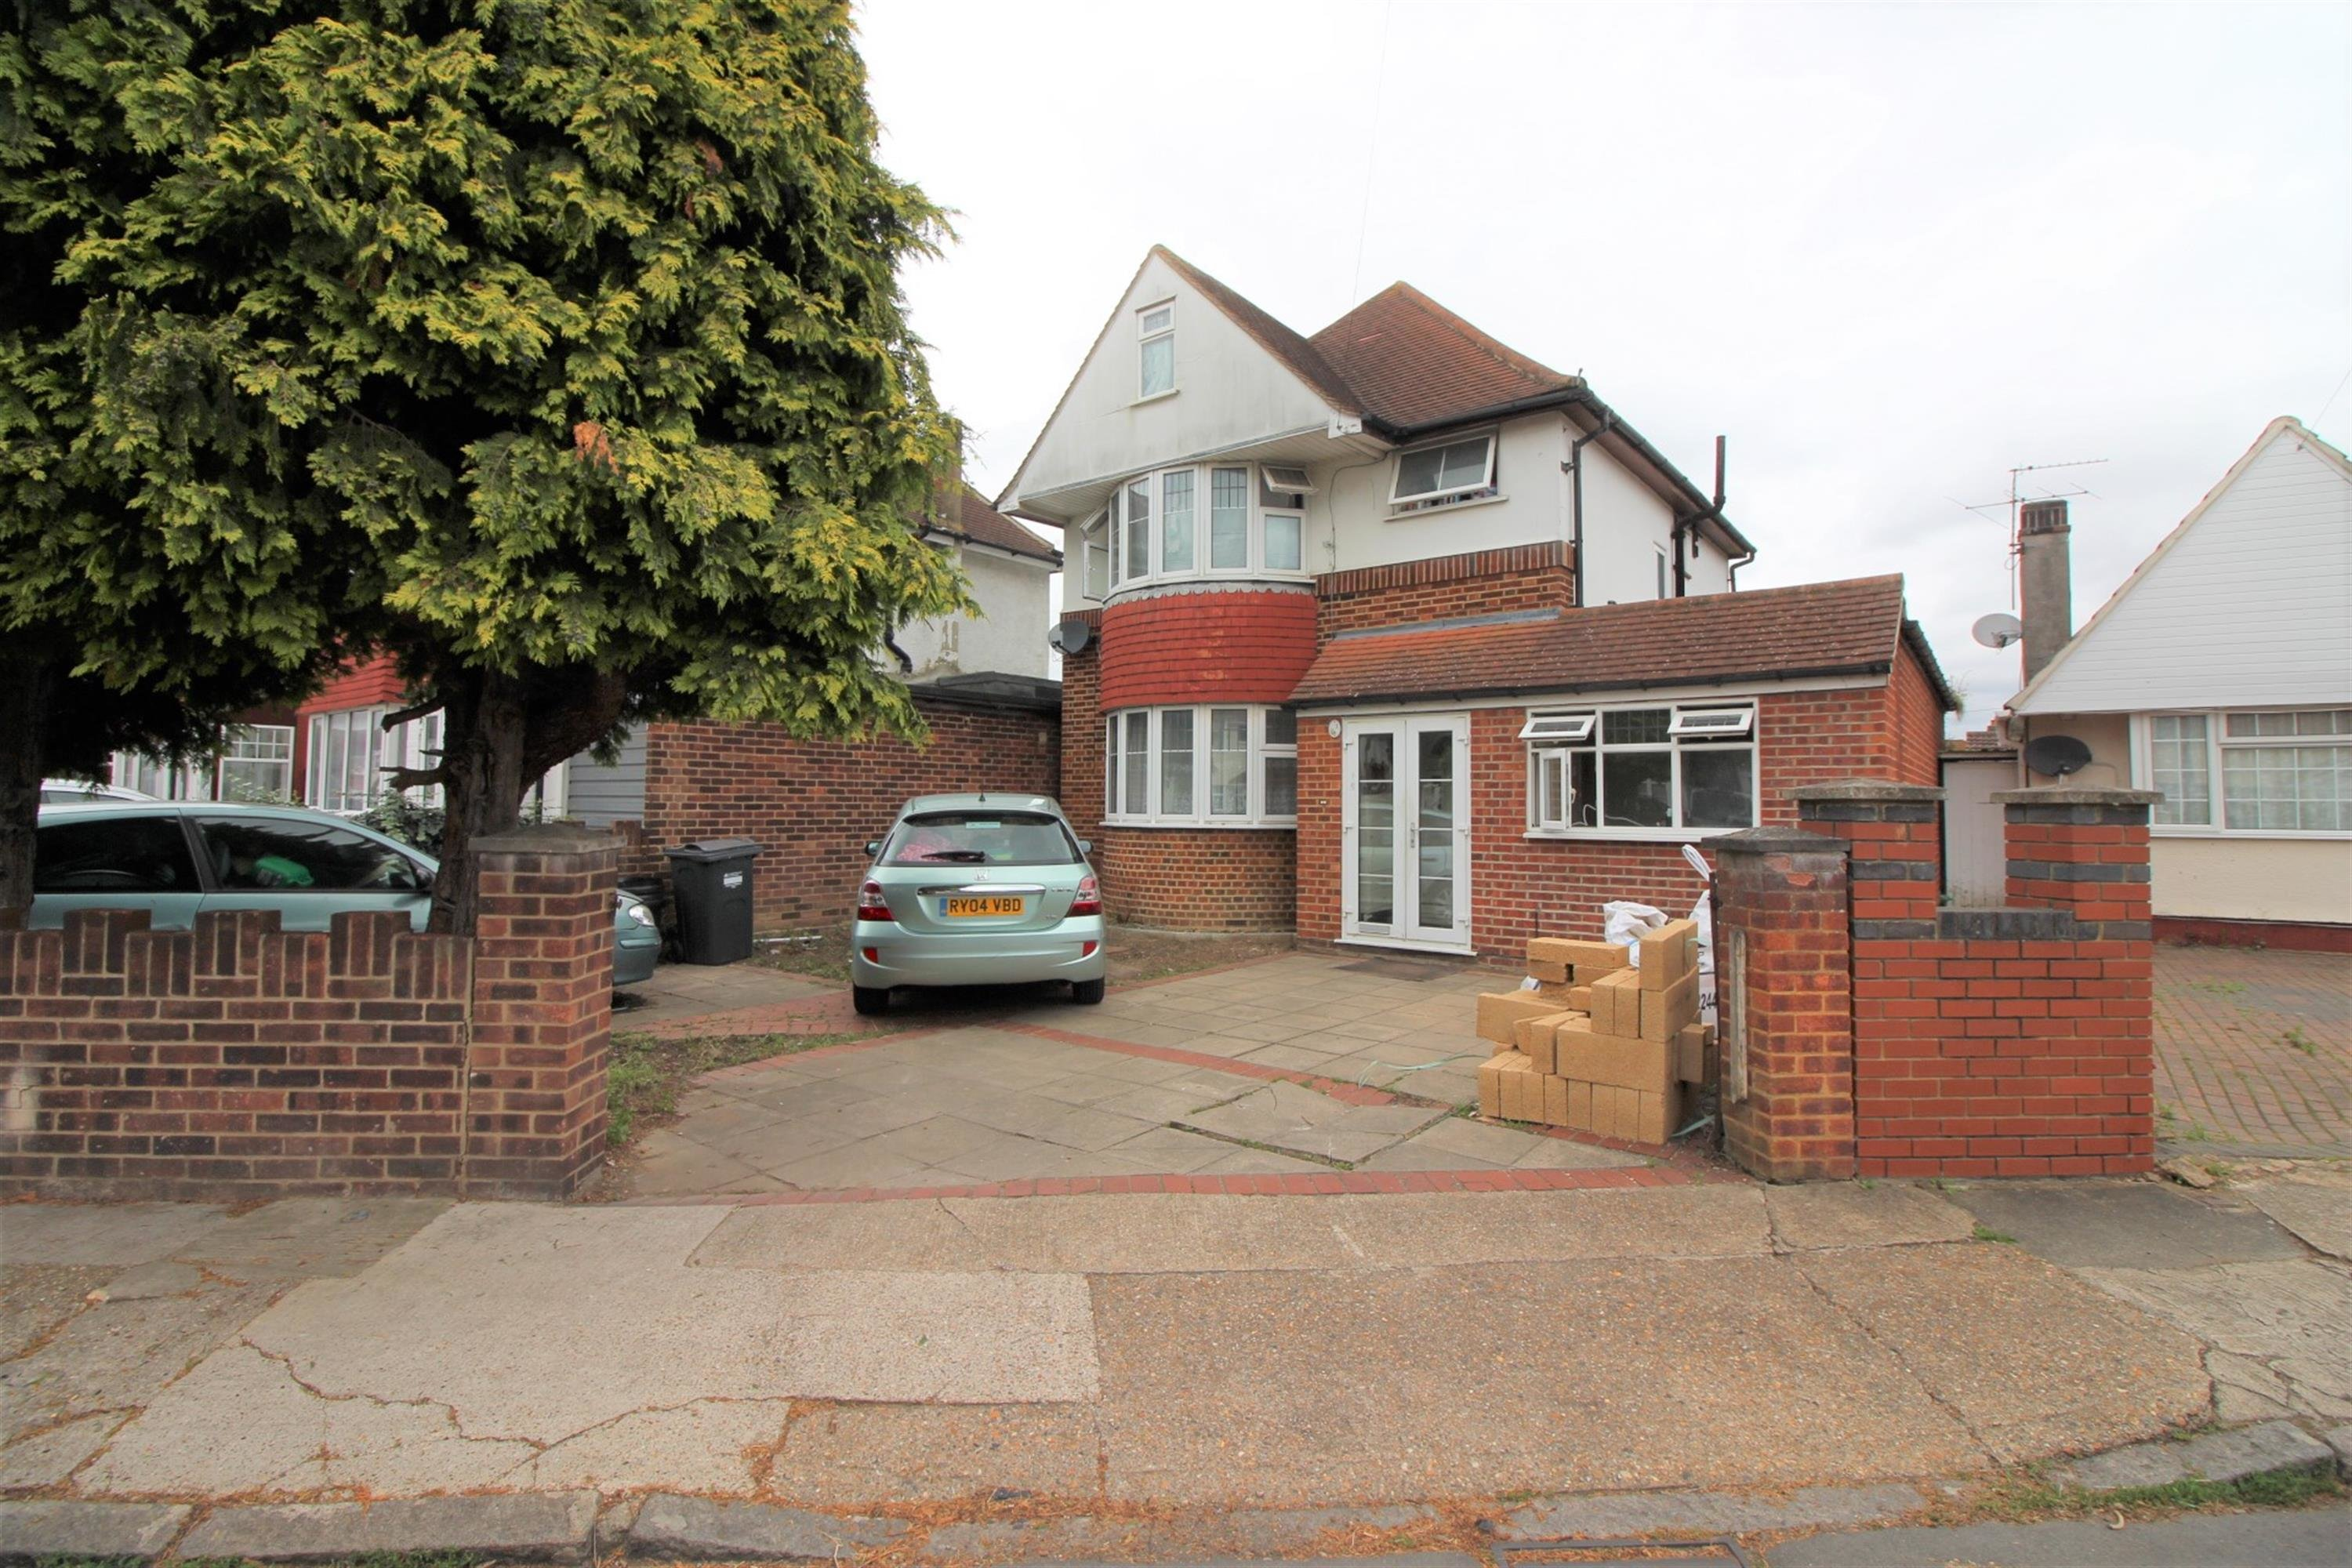 Best 2 Bedroom Flat To Rent Roseheath Road Hounslow Tw Tw4 5Hg With Pictures